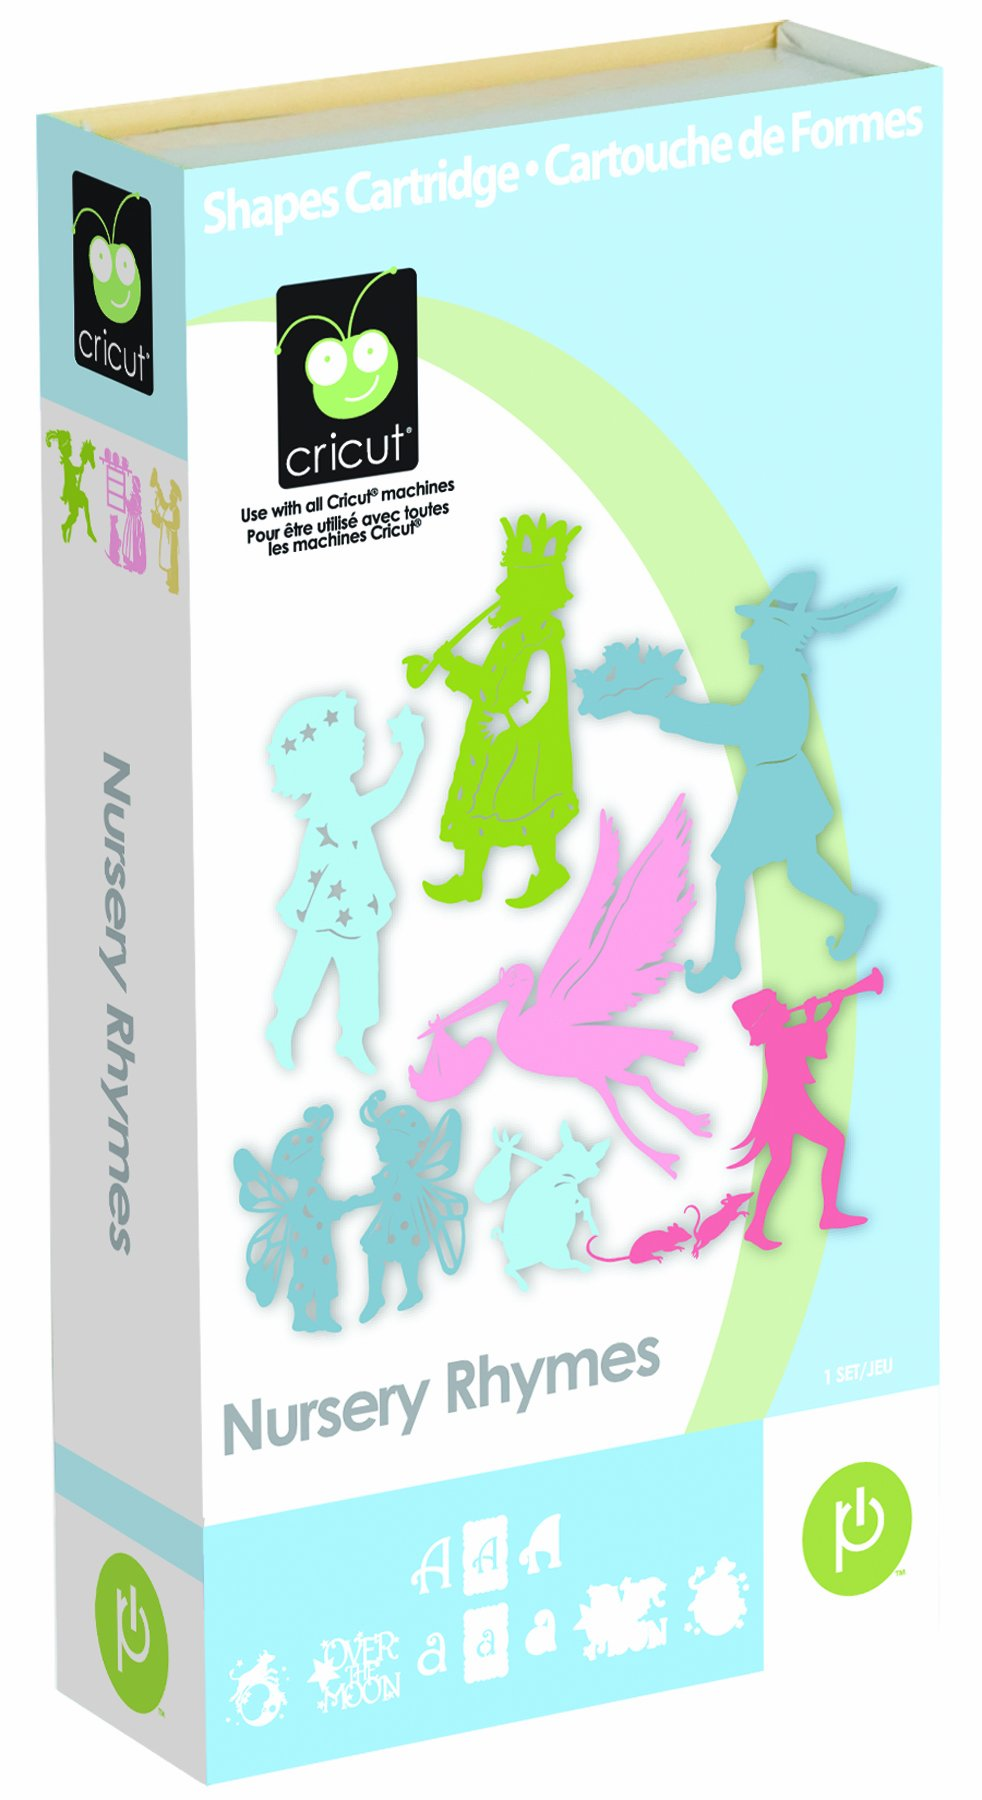 Cricut Cartridge, Nursery Rhymes by Cricut (Image #1)